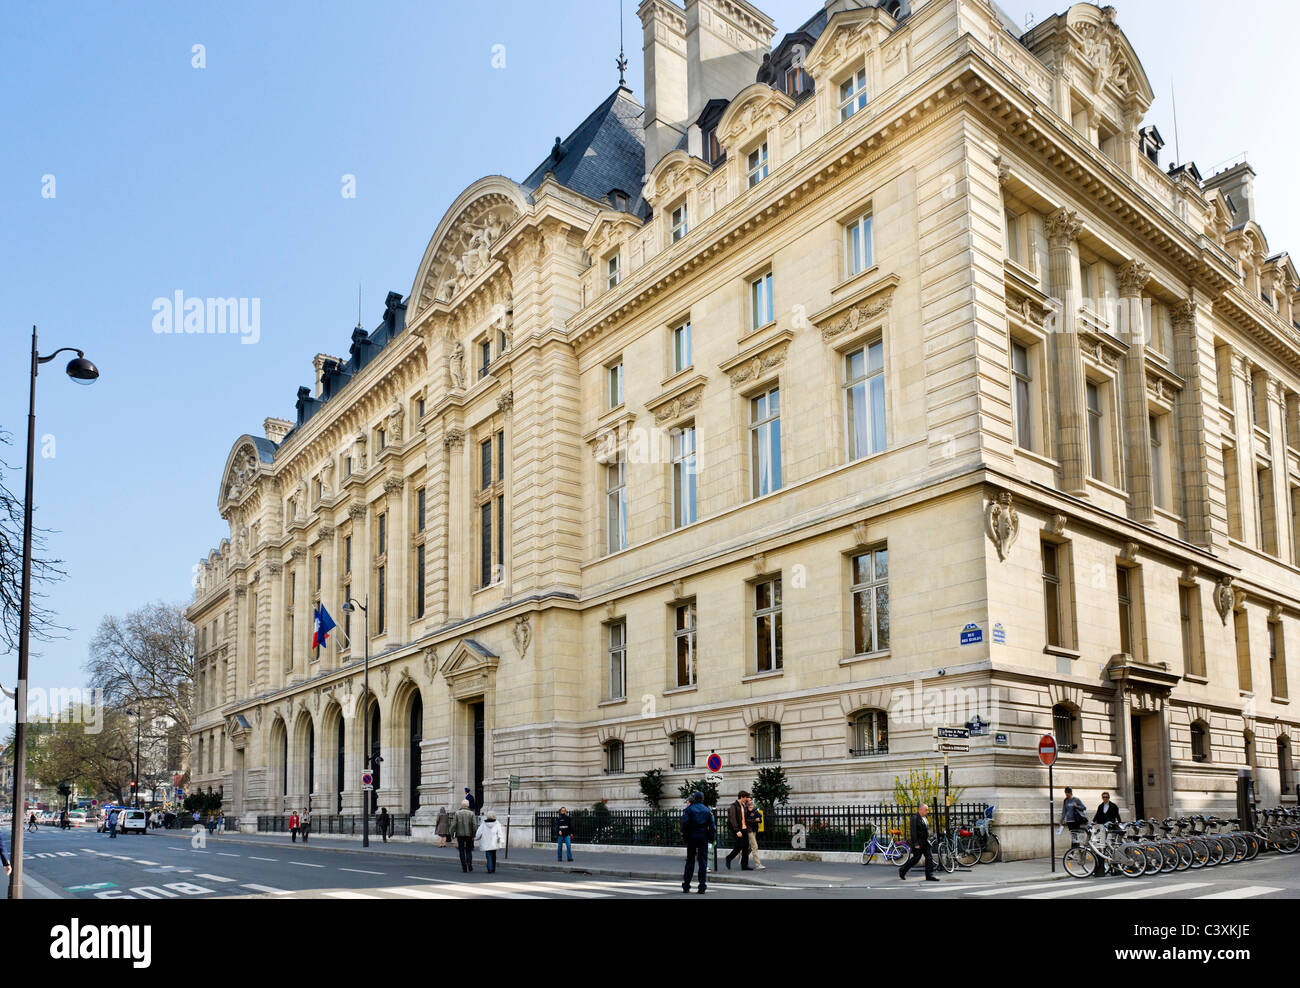 Entrance to the Sorbonne on Rue des Ecoles, Latin Quarter, Paris, France Stock Photo